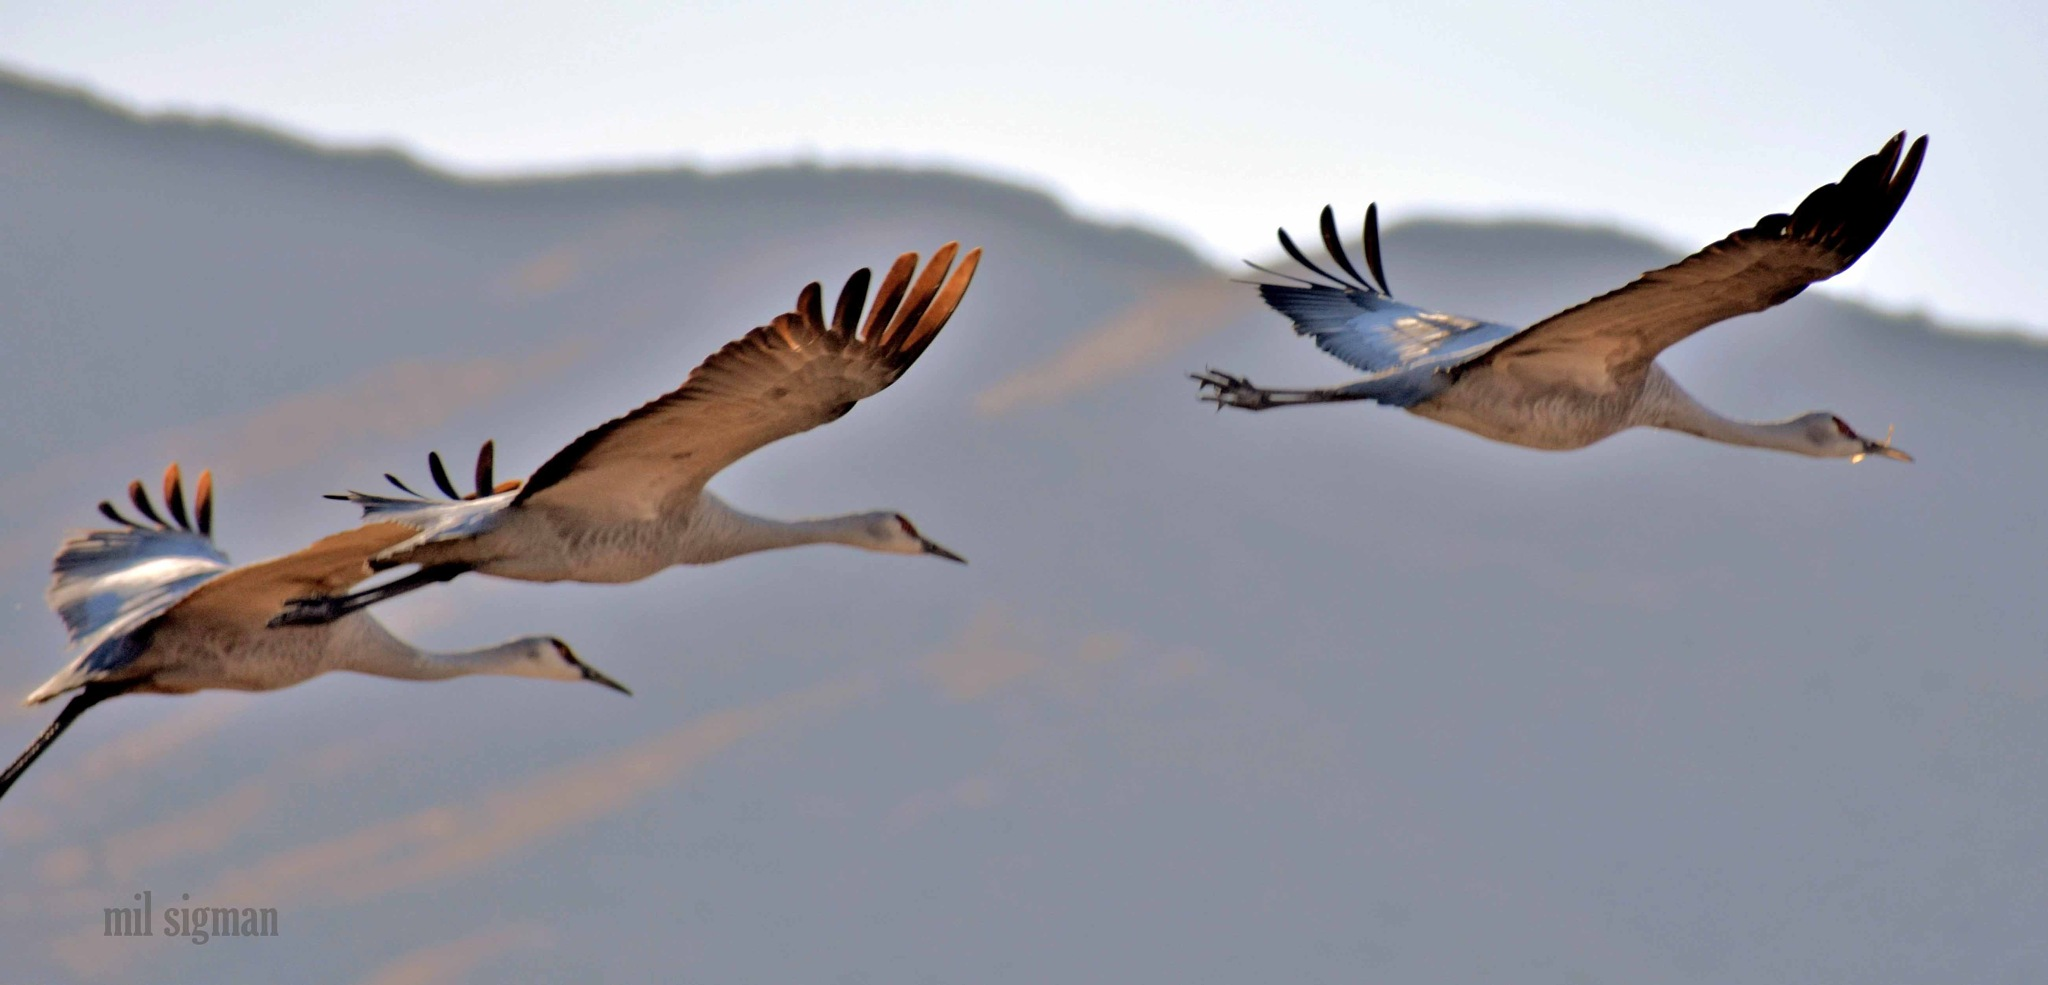 Migrating sandhill cranes  by milled98